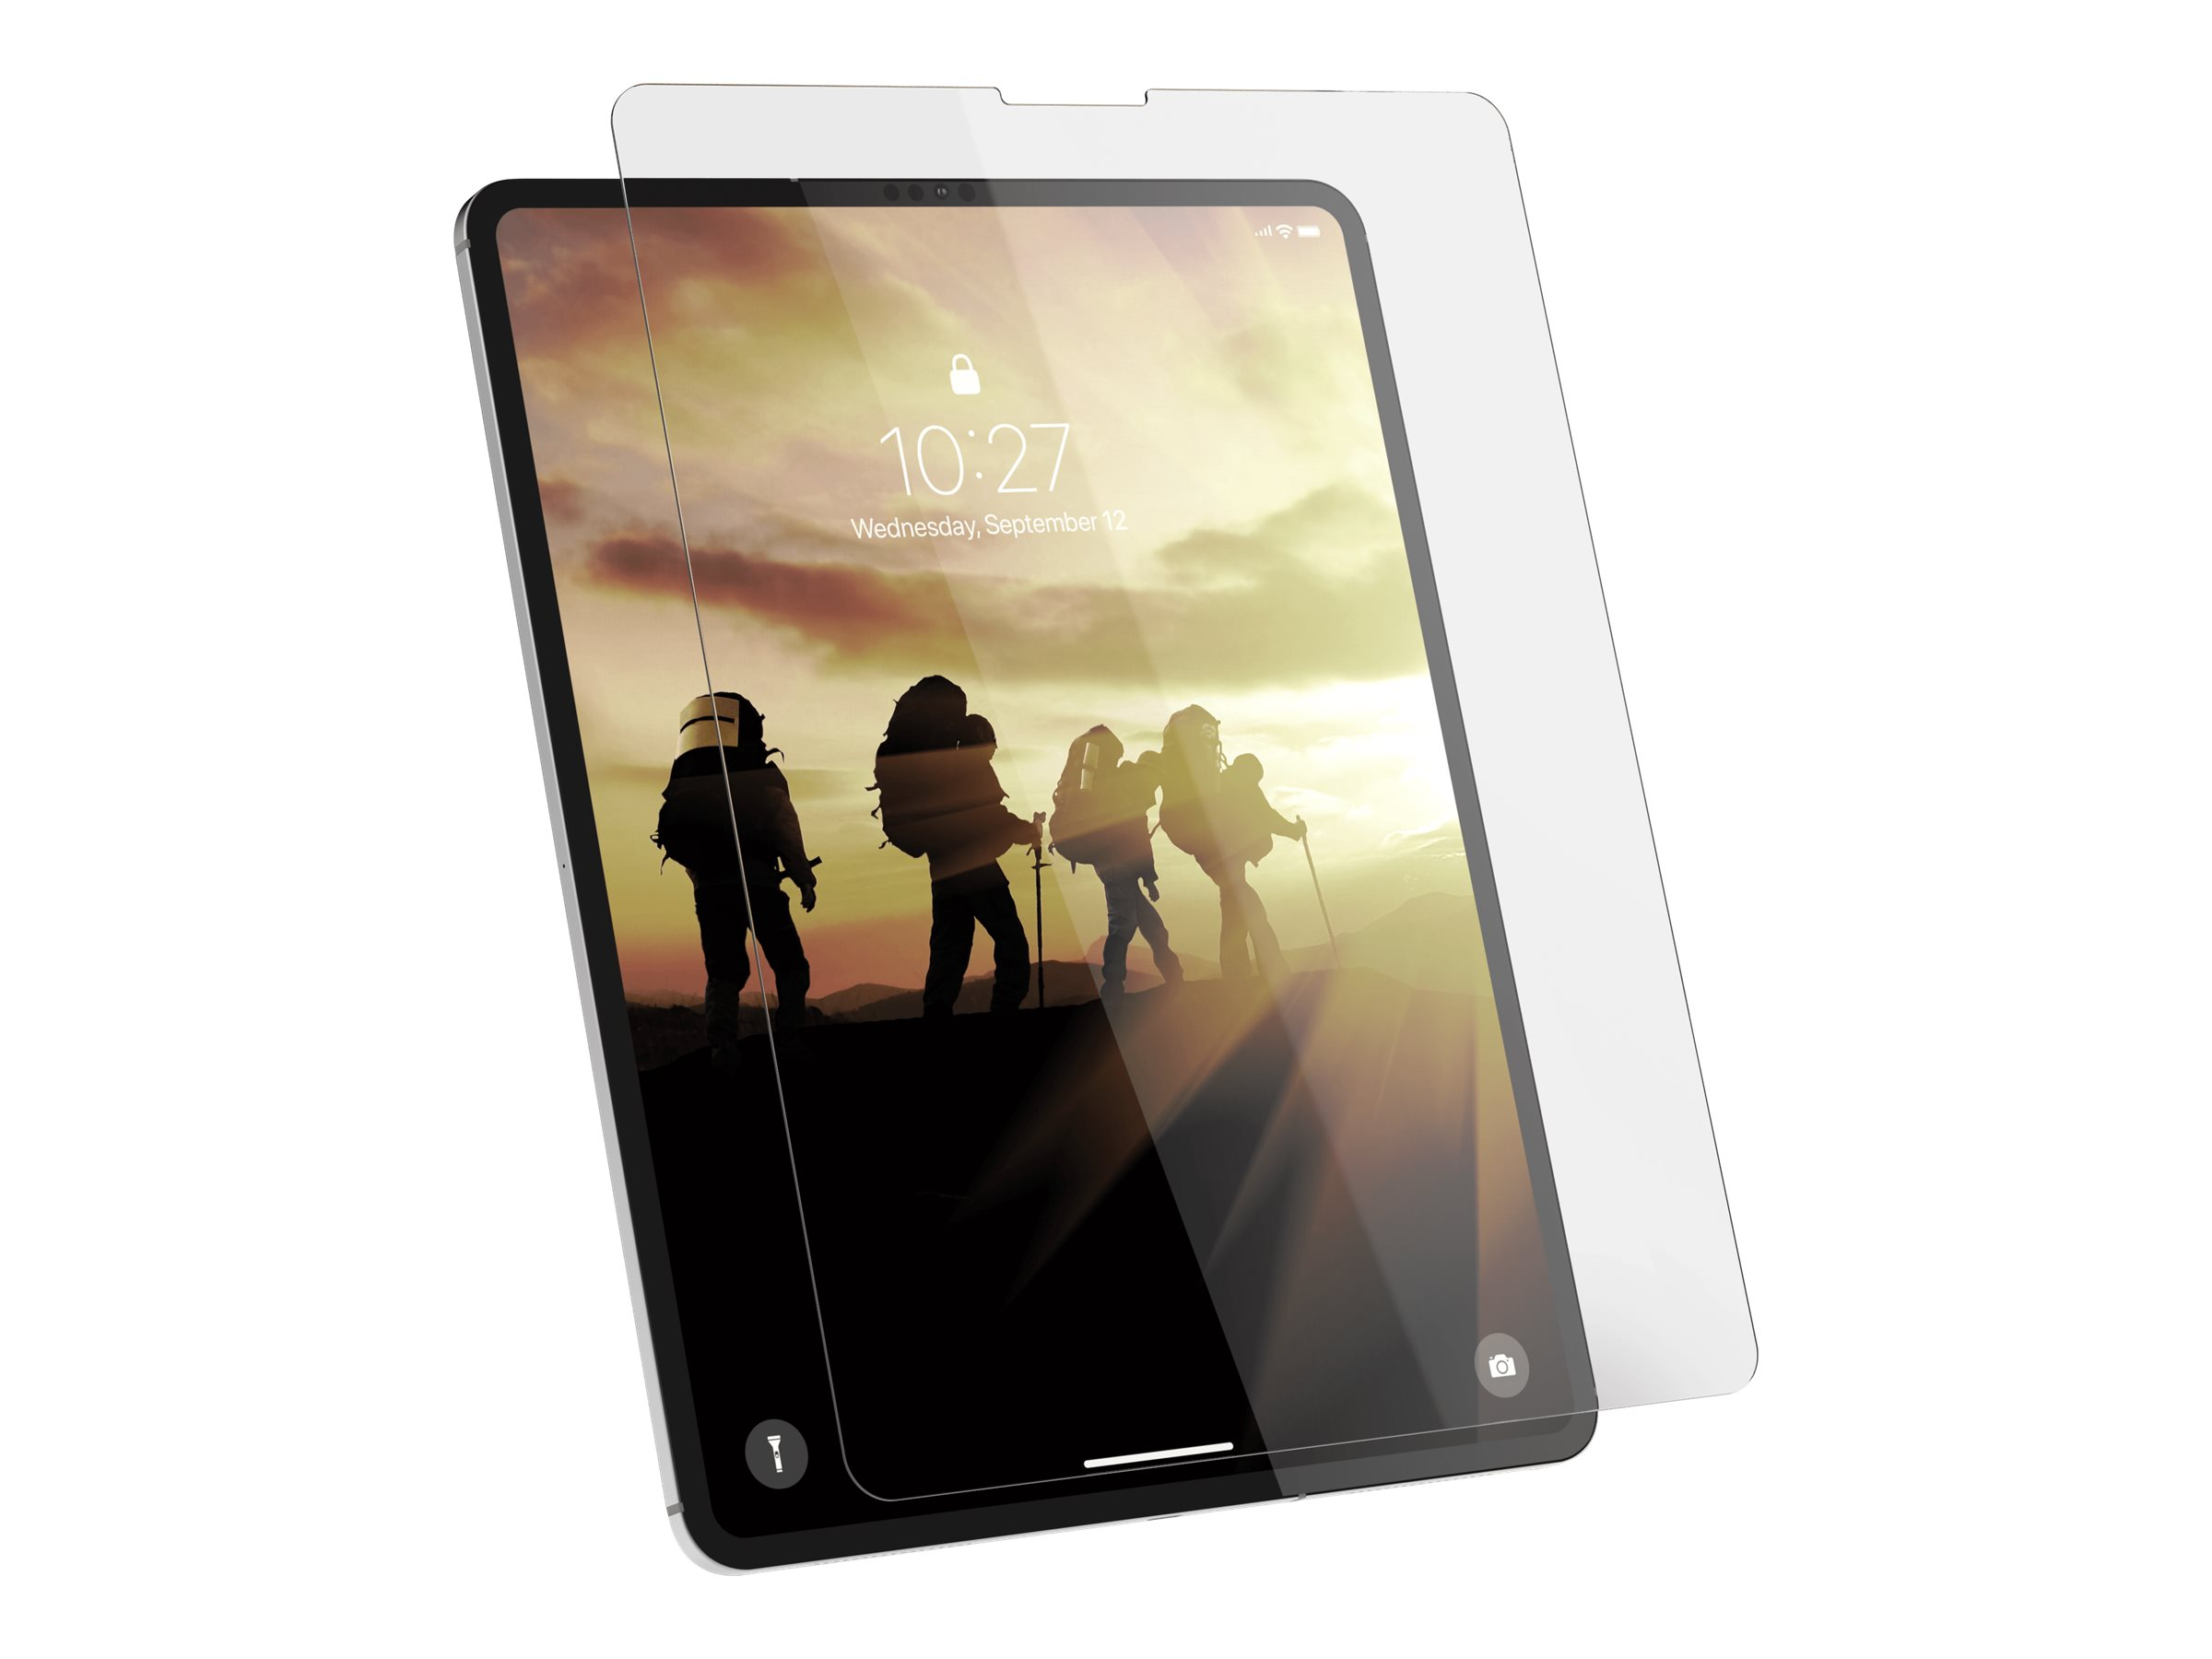 UAG Tempered Glass Screen Shield for iPad Pro 12.9-inch (3rd Gen, 2018) - screen protector